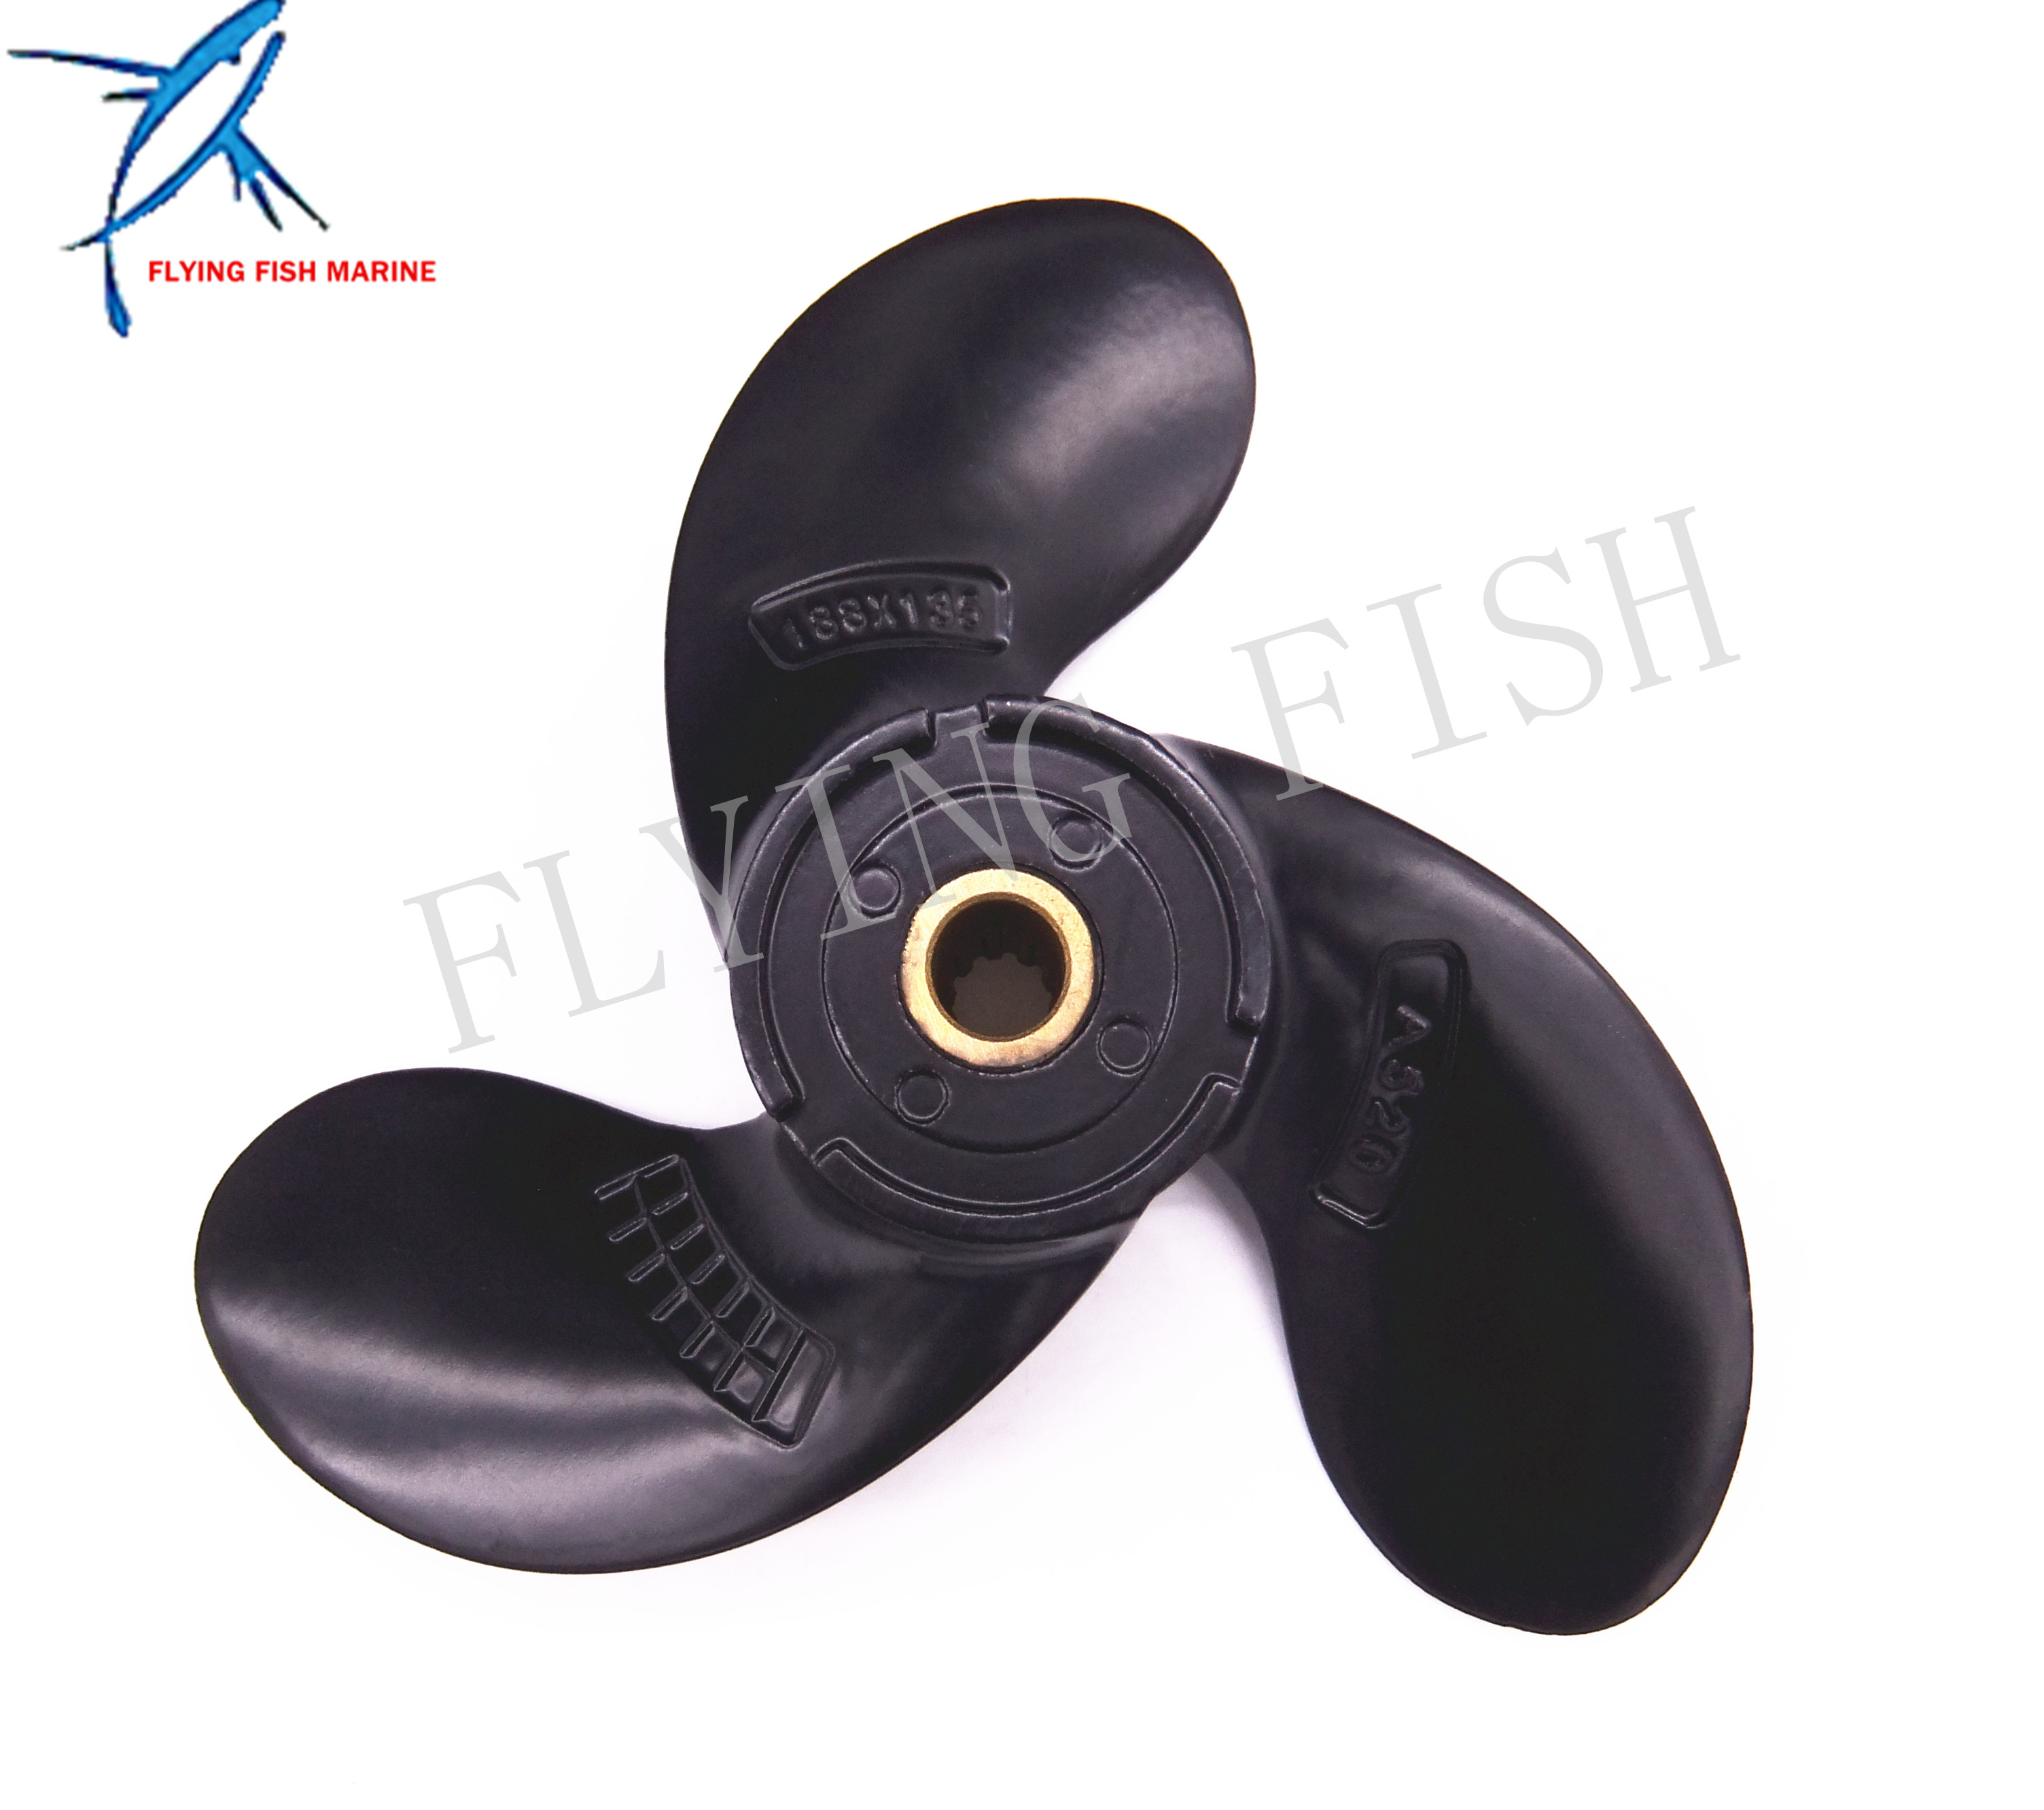 Boat Motor Aluminum Alloy Propeller 58110-97JA0-019 for Suzuki 2.5hp DF2.5 Outboard Engine A520 7 1/2x6